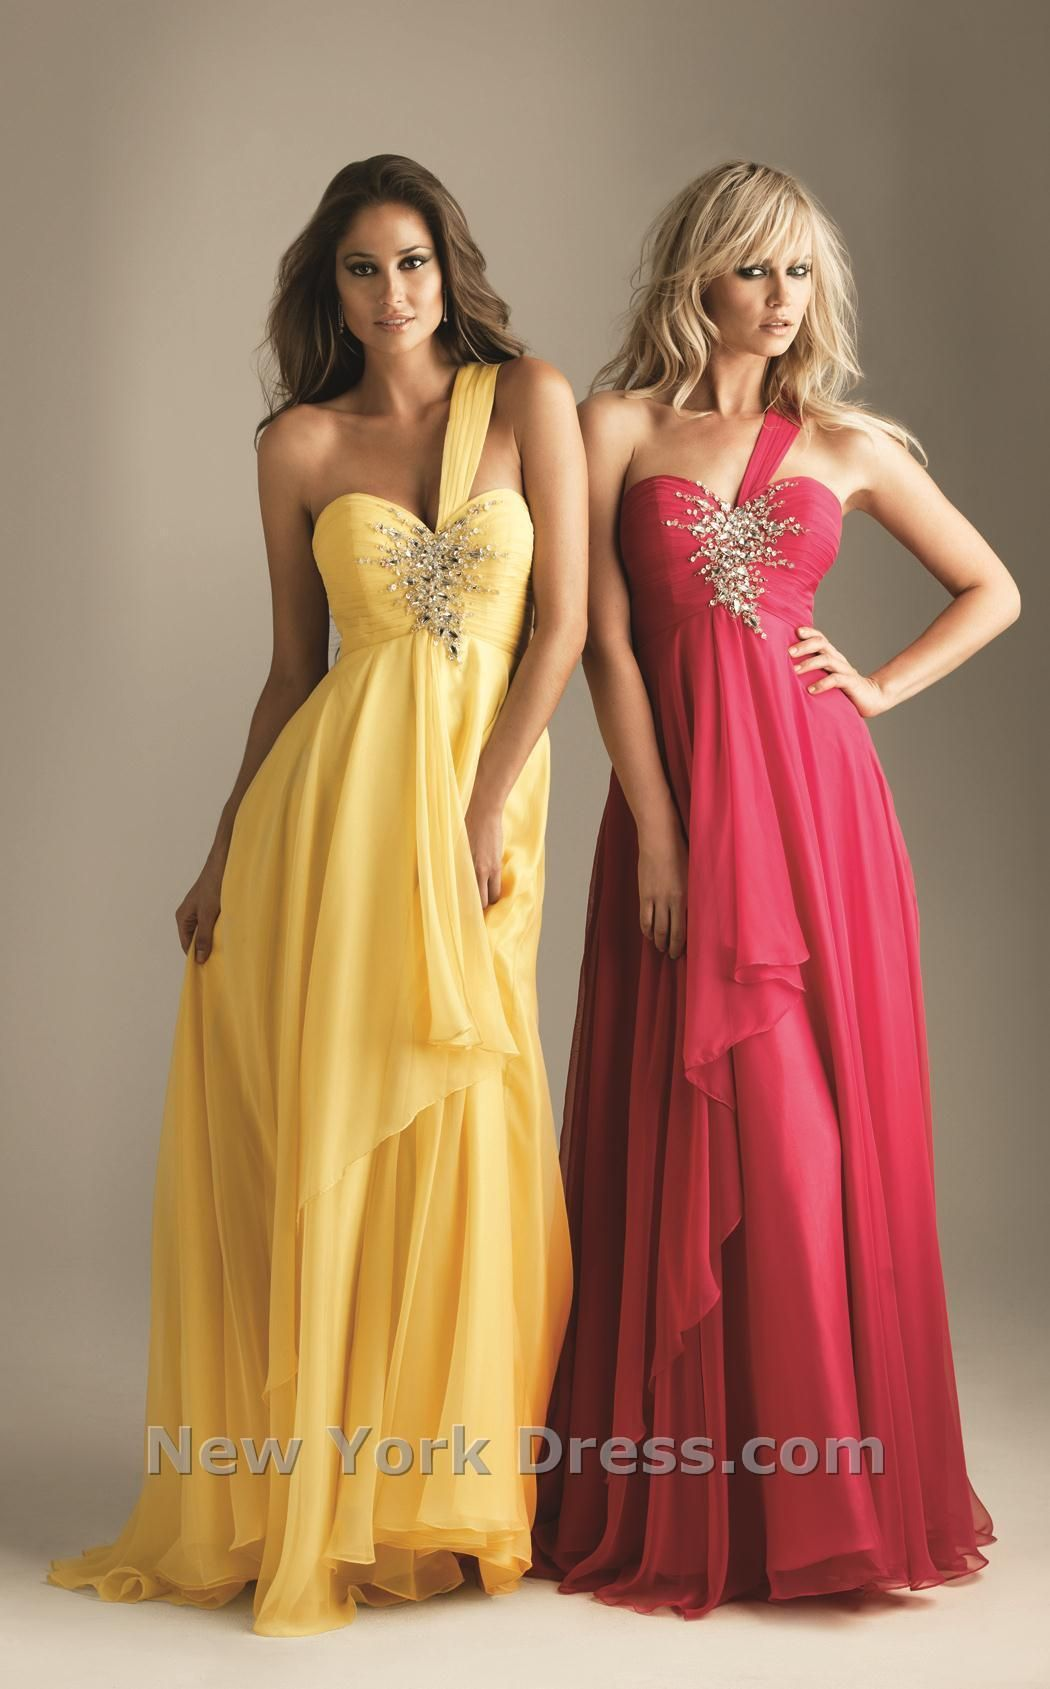 Allure dress red carpet gowns and shoulder